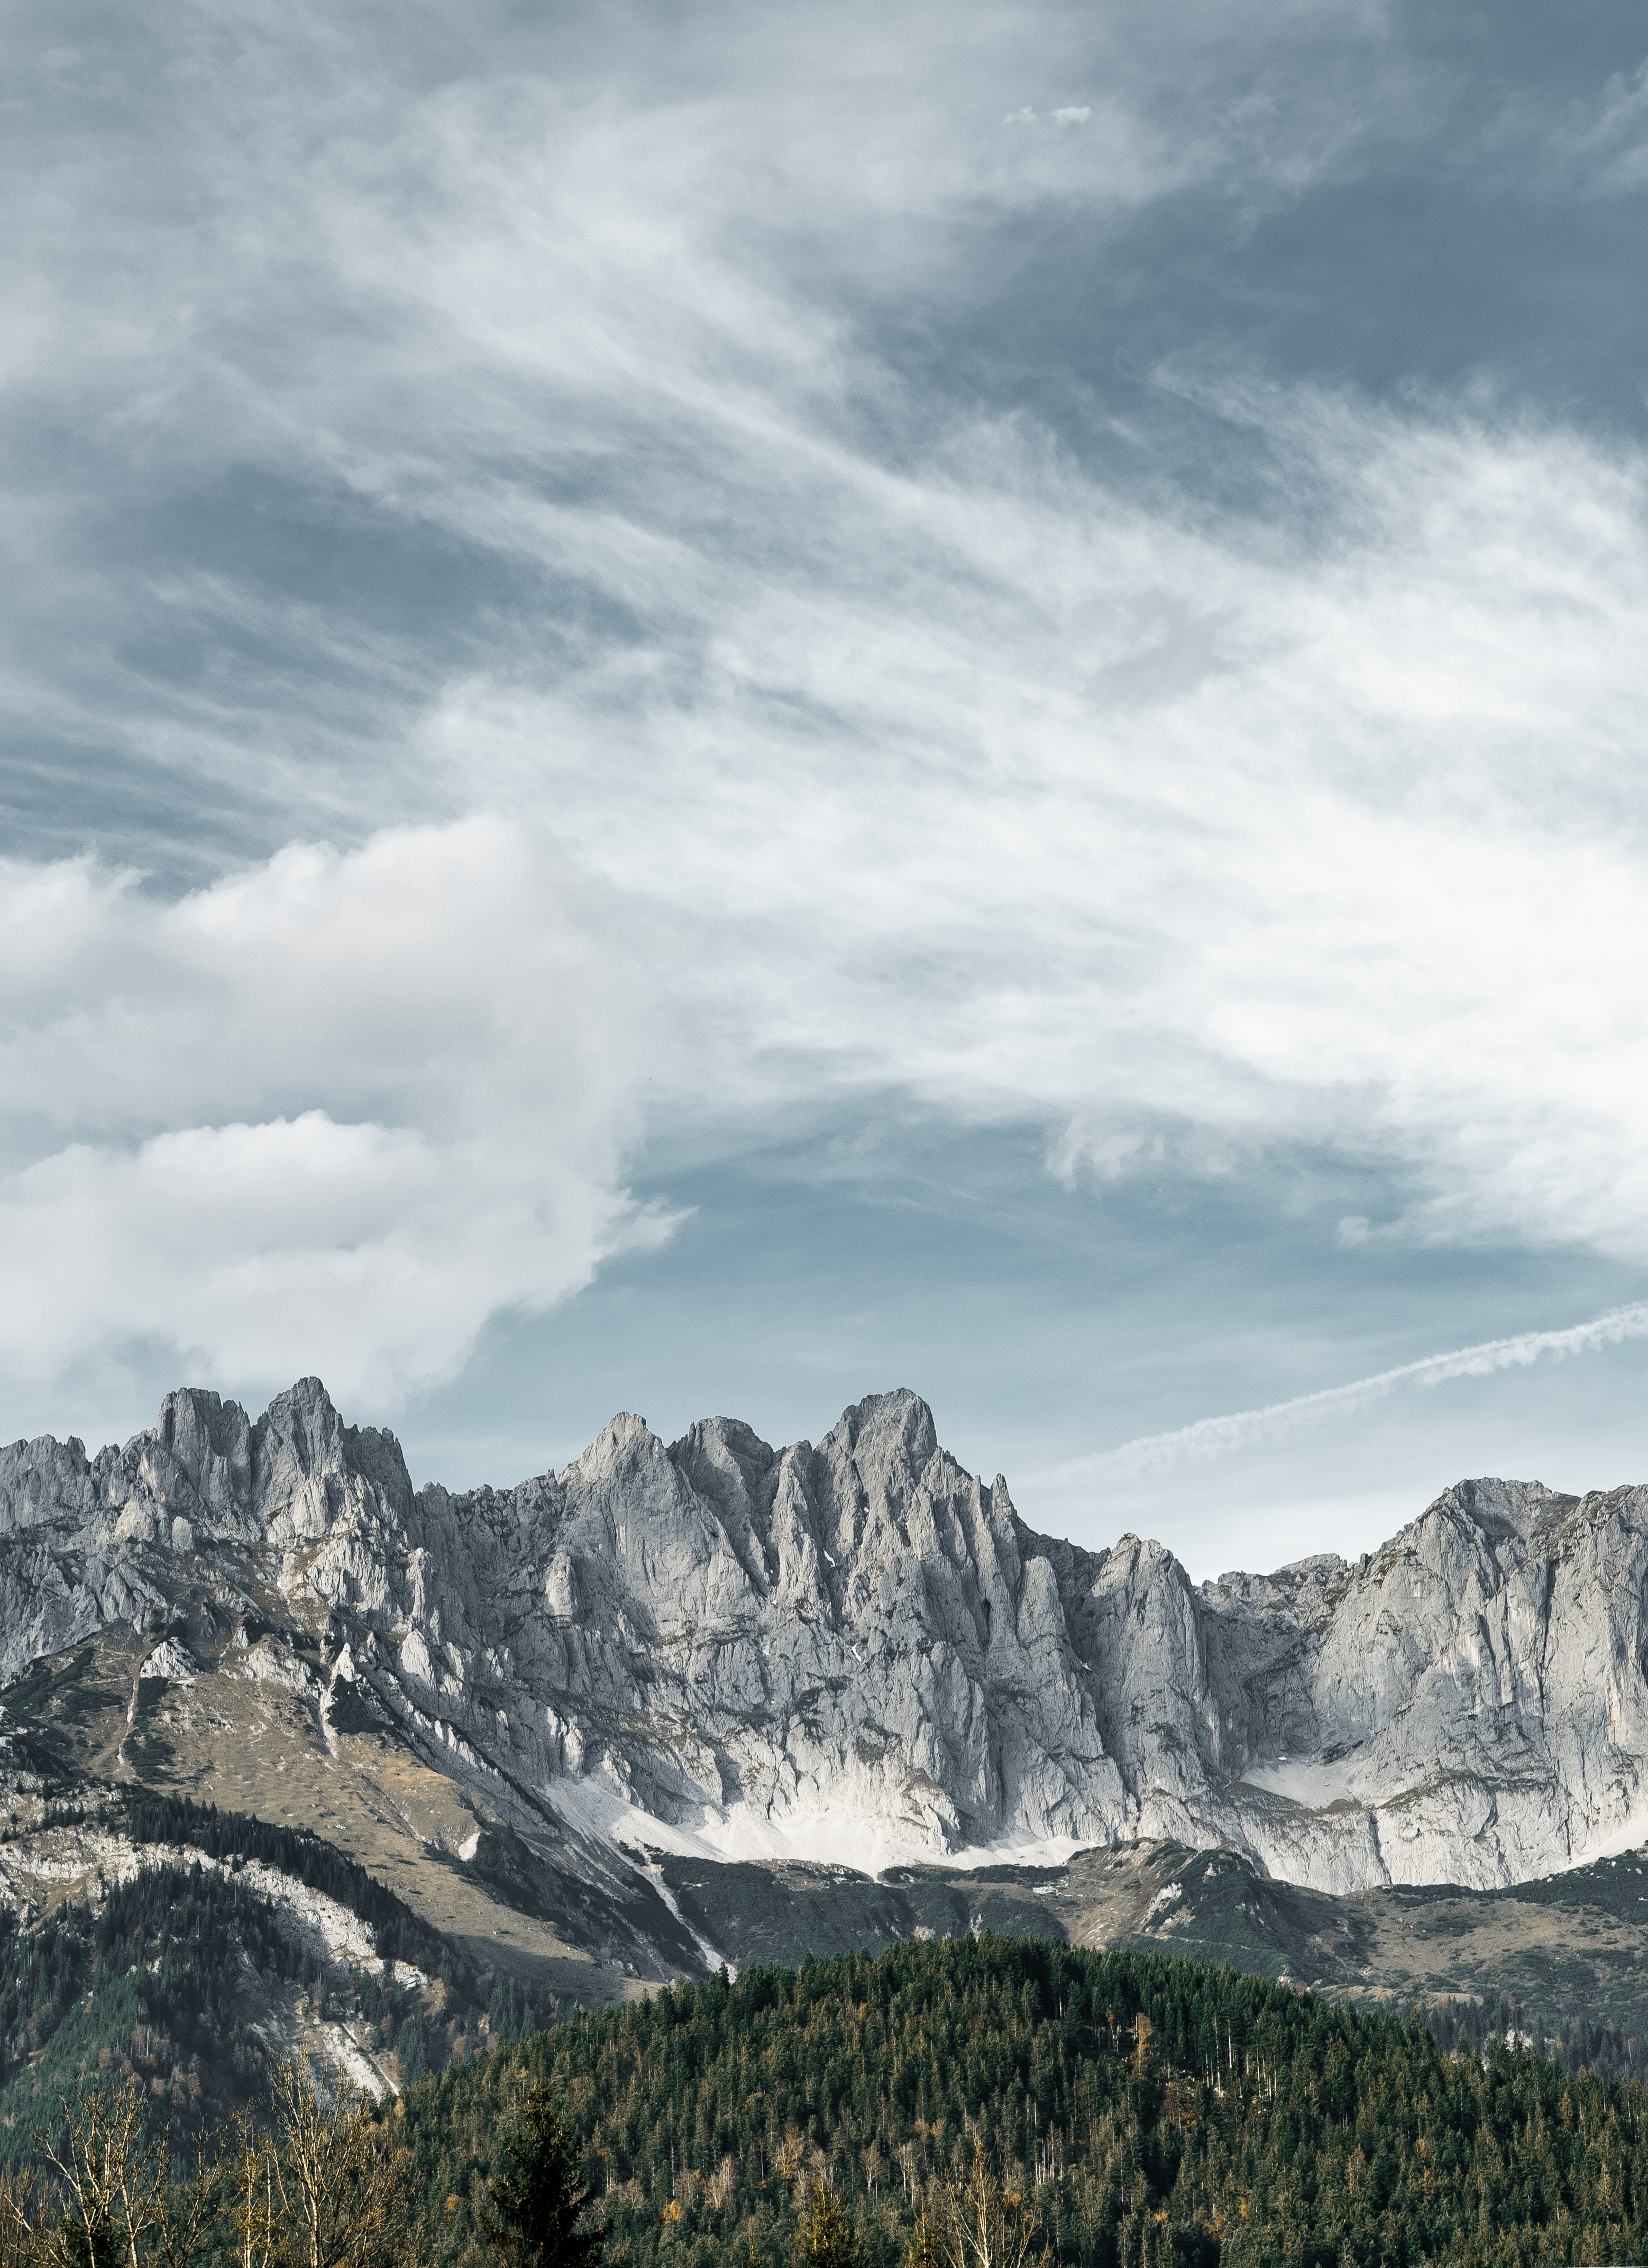 mountain near forest under clouds